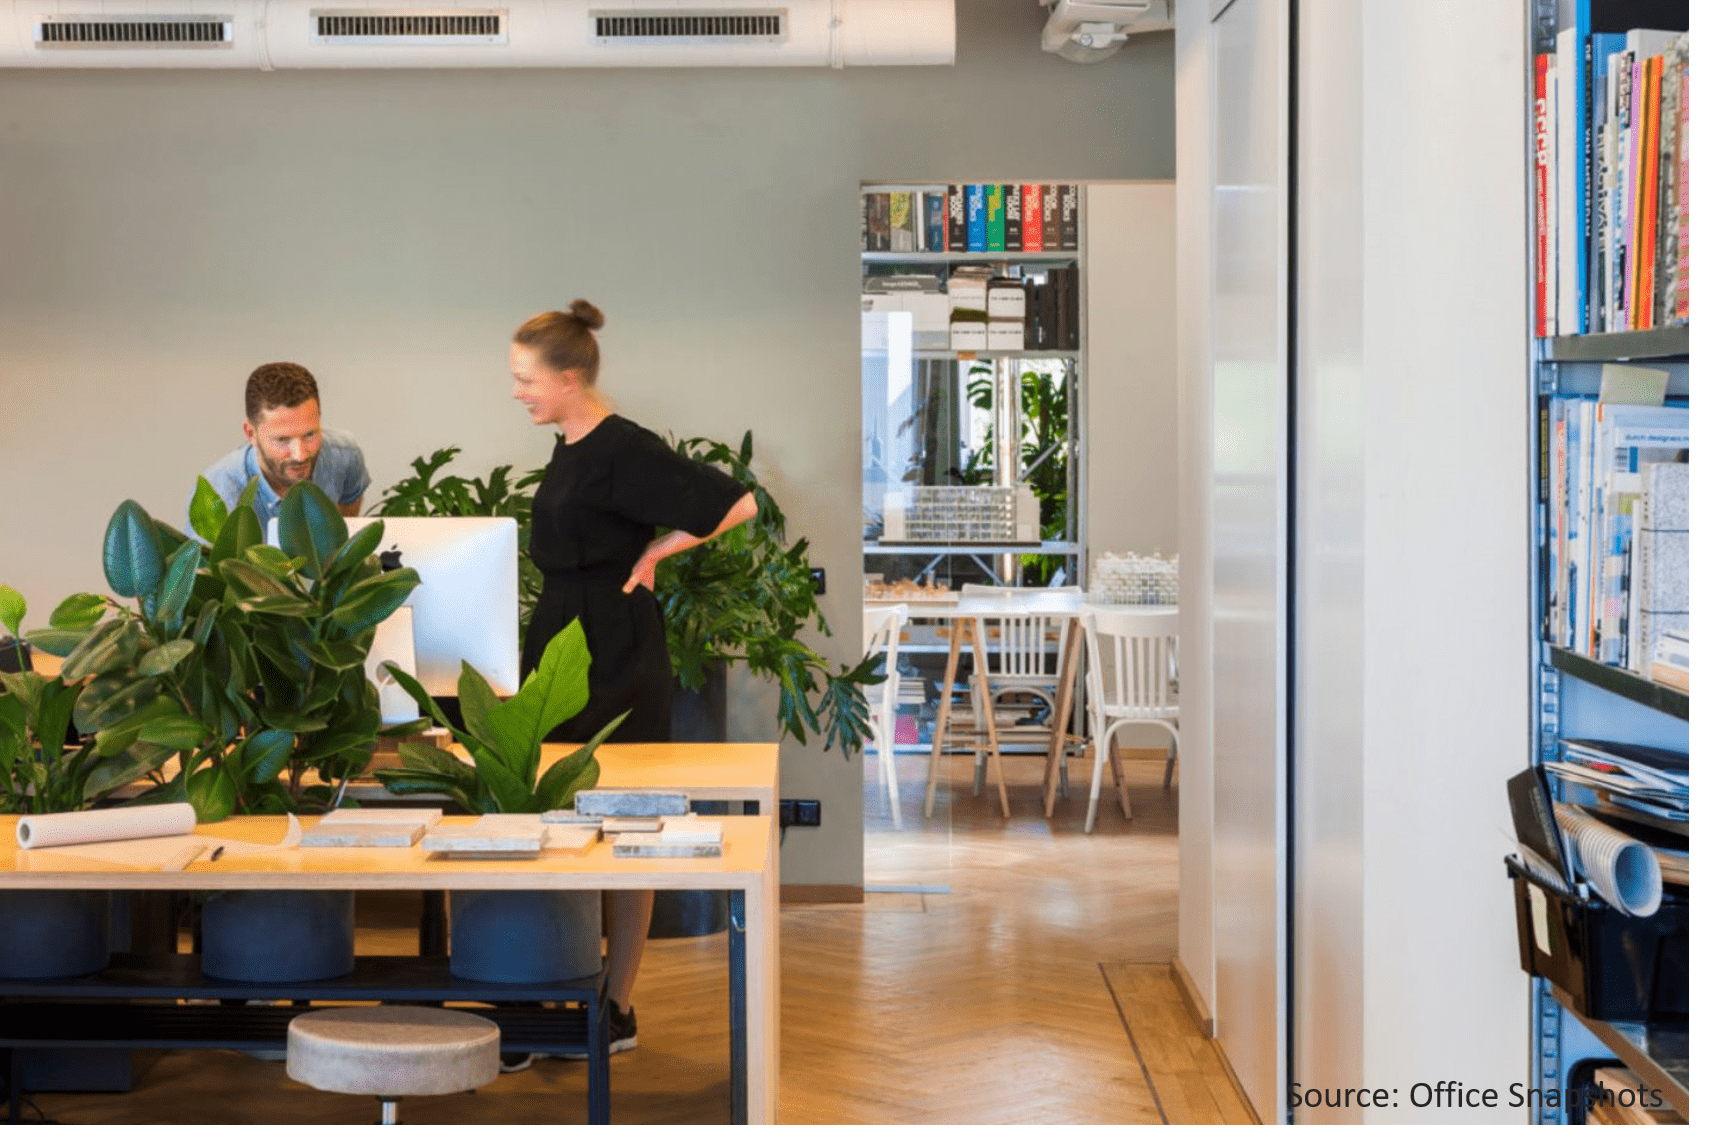 People-and-plants-working-together-in-the-modern-workplace